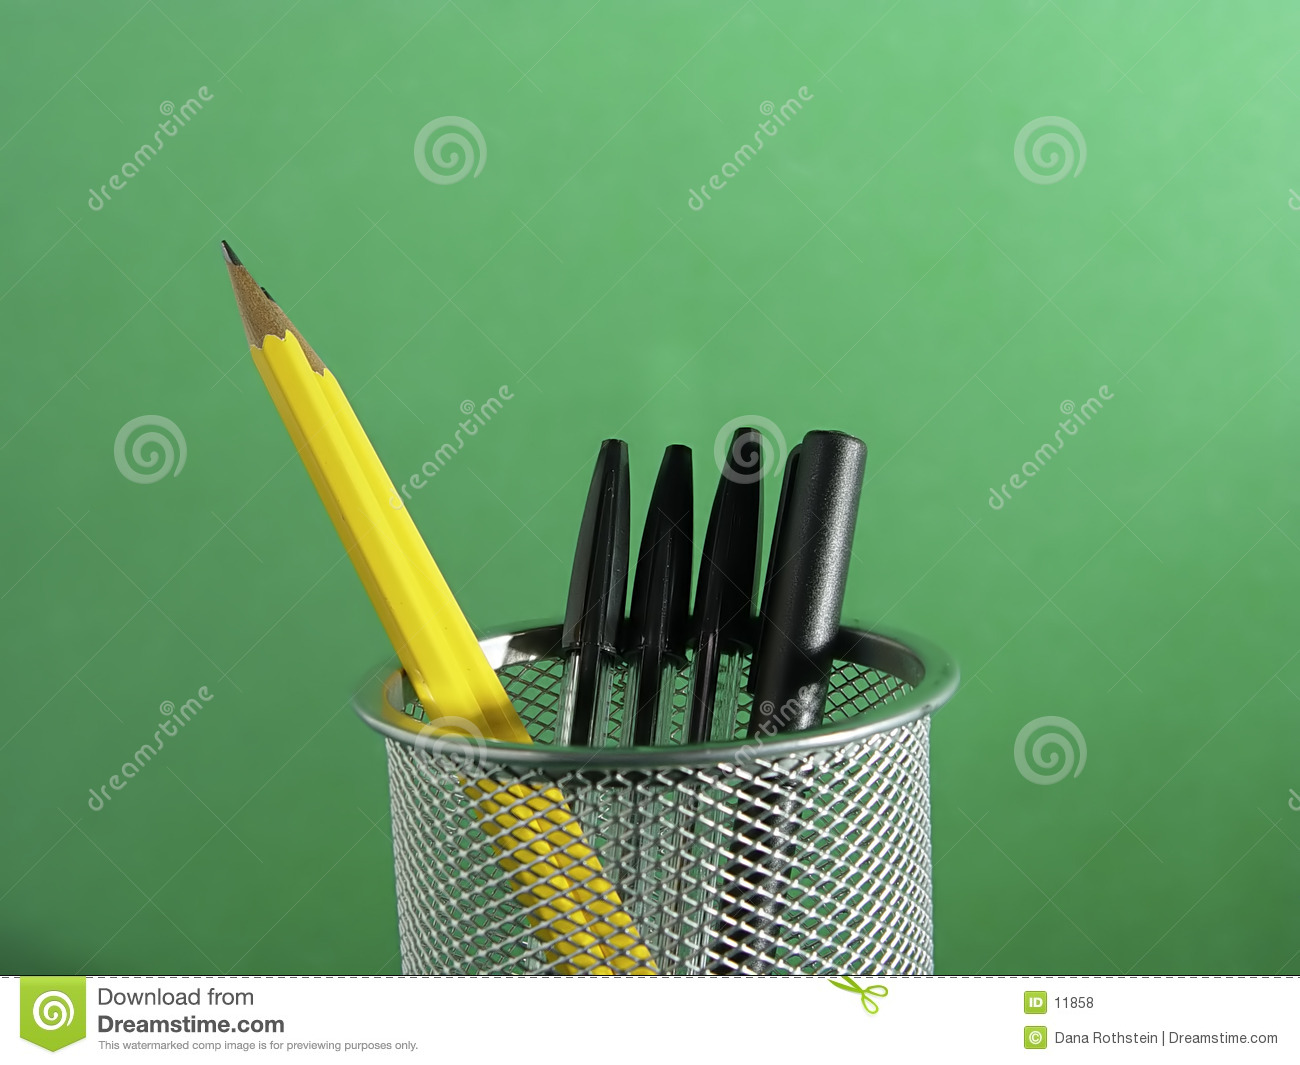 Pen and Pencil Holder 2